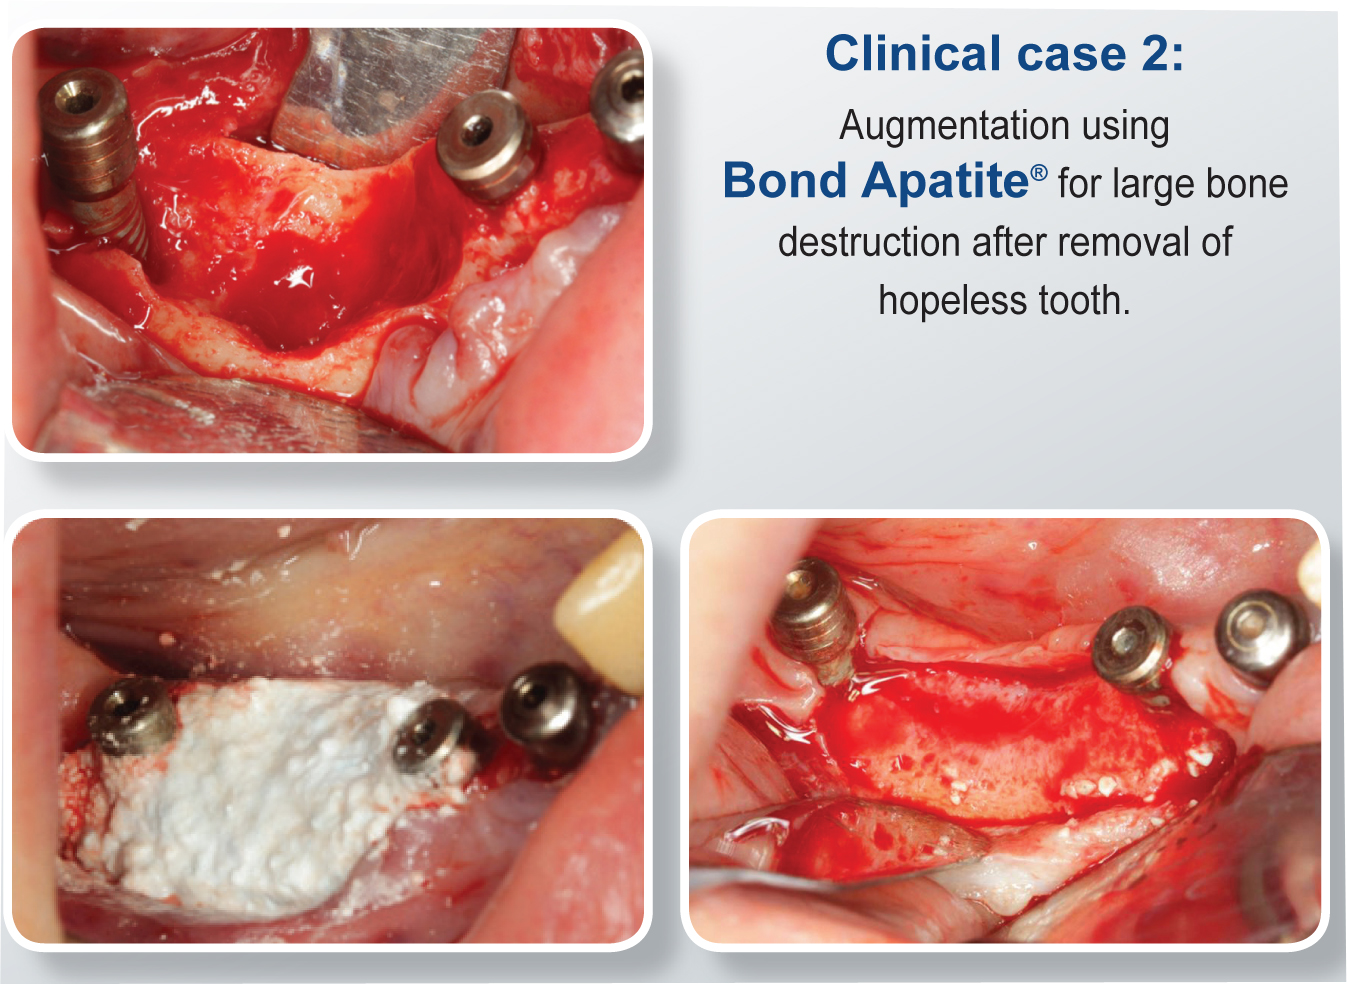 Bond Apatite Bone Graft Cement - Clinical Case